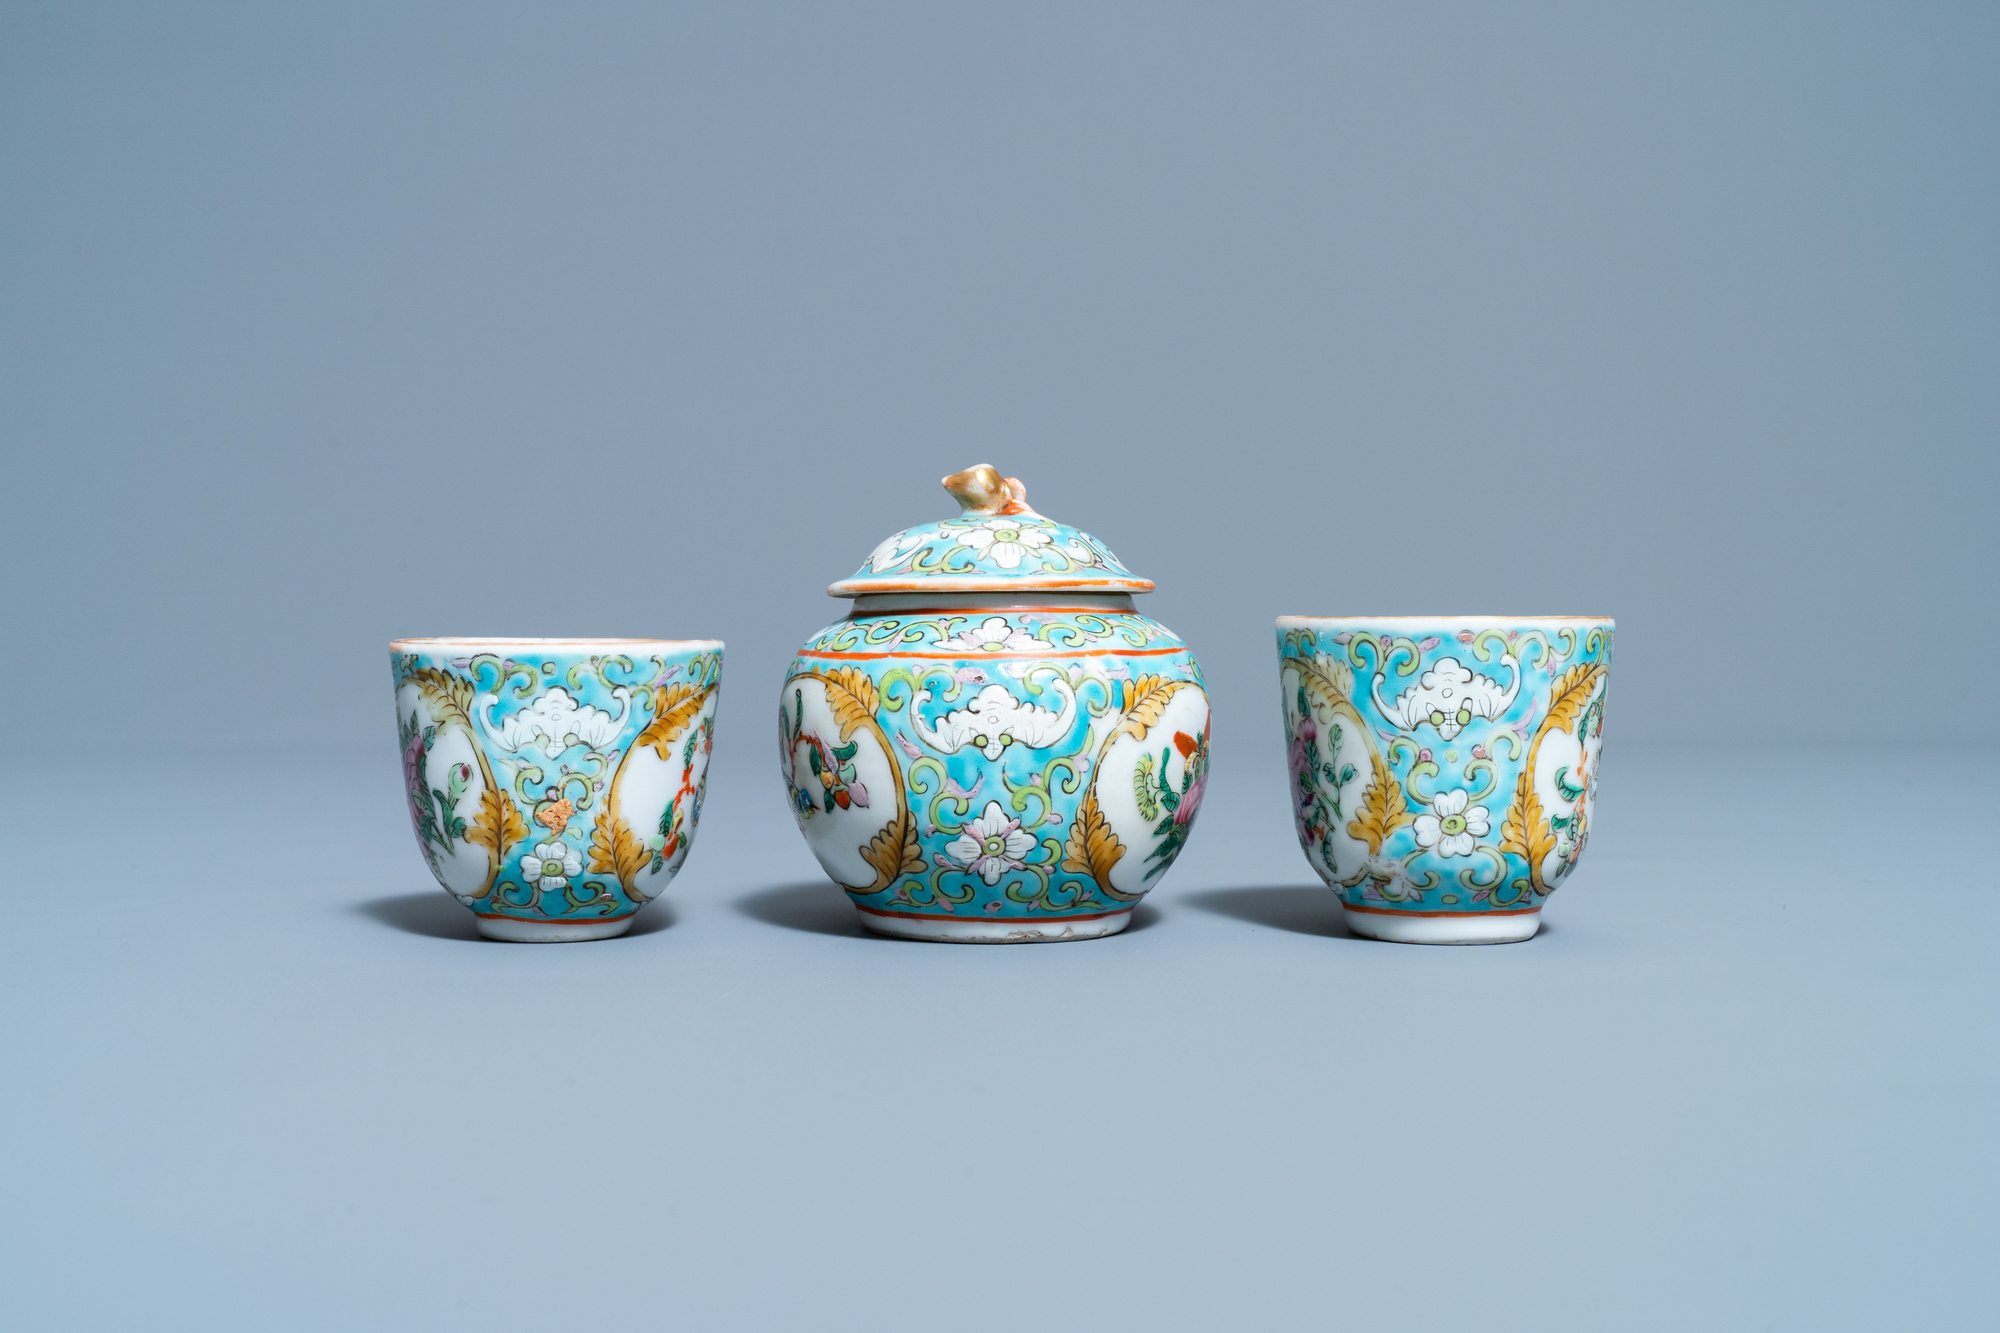 A Chinese famille rose 'tete-a-tete' tea service on tray, 19th C. - Image 8 of 10